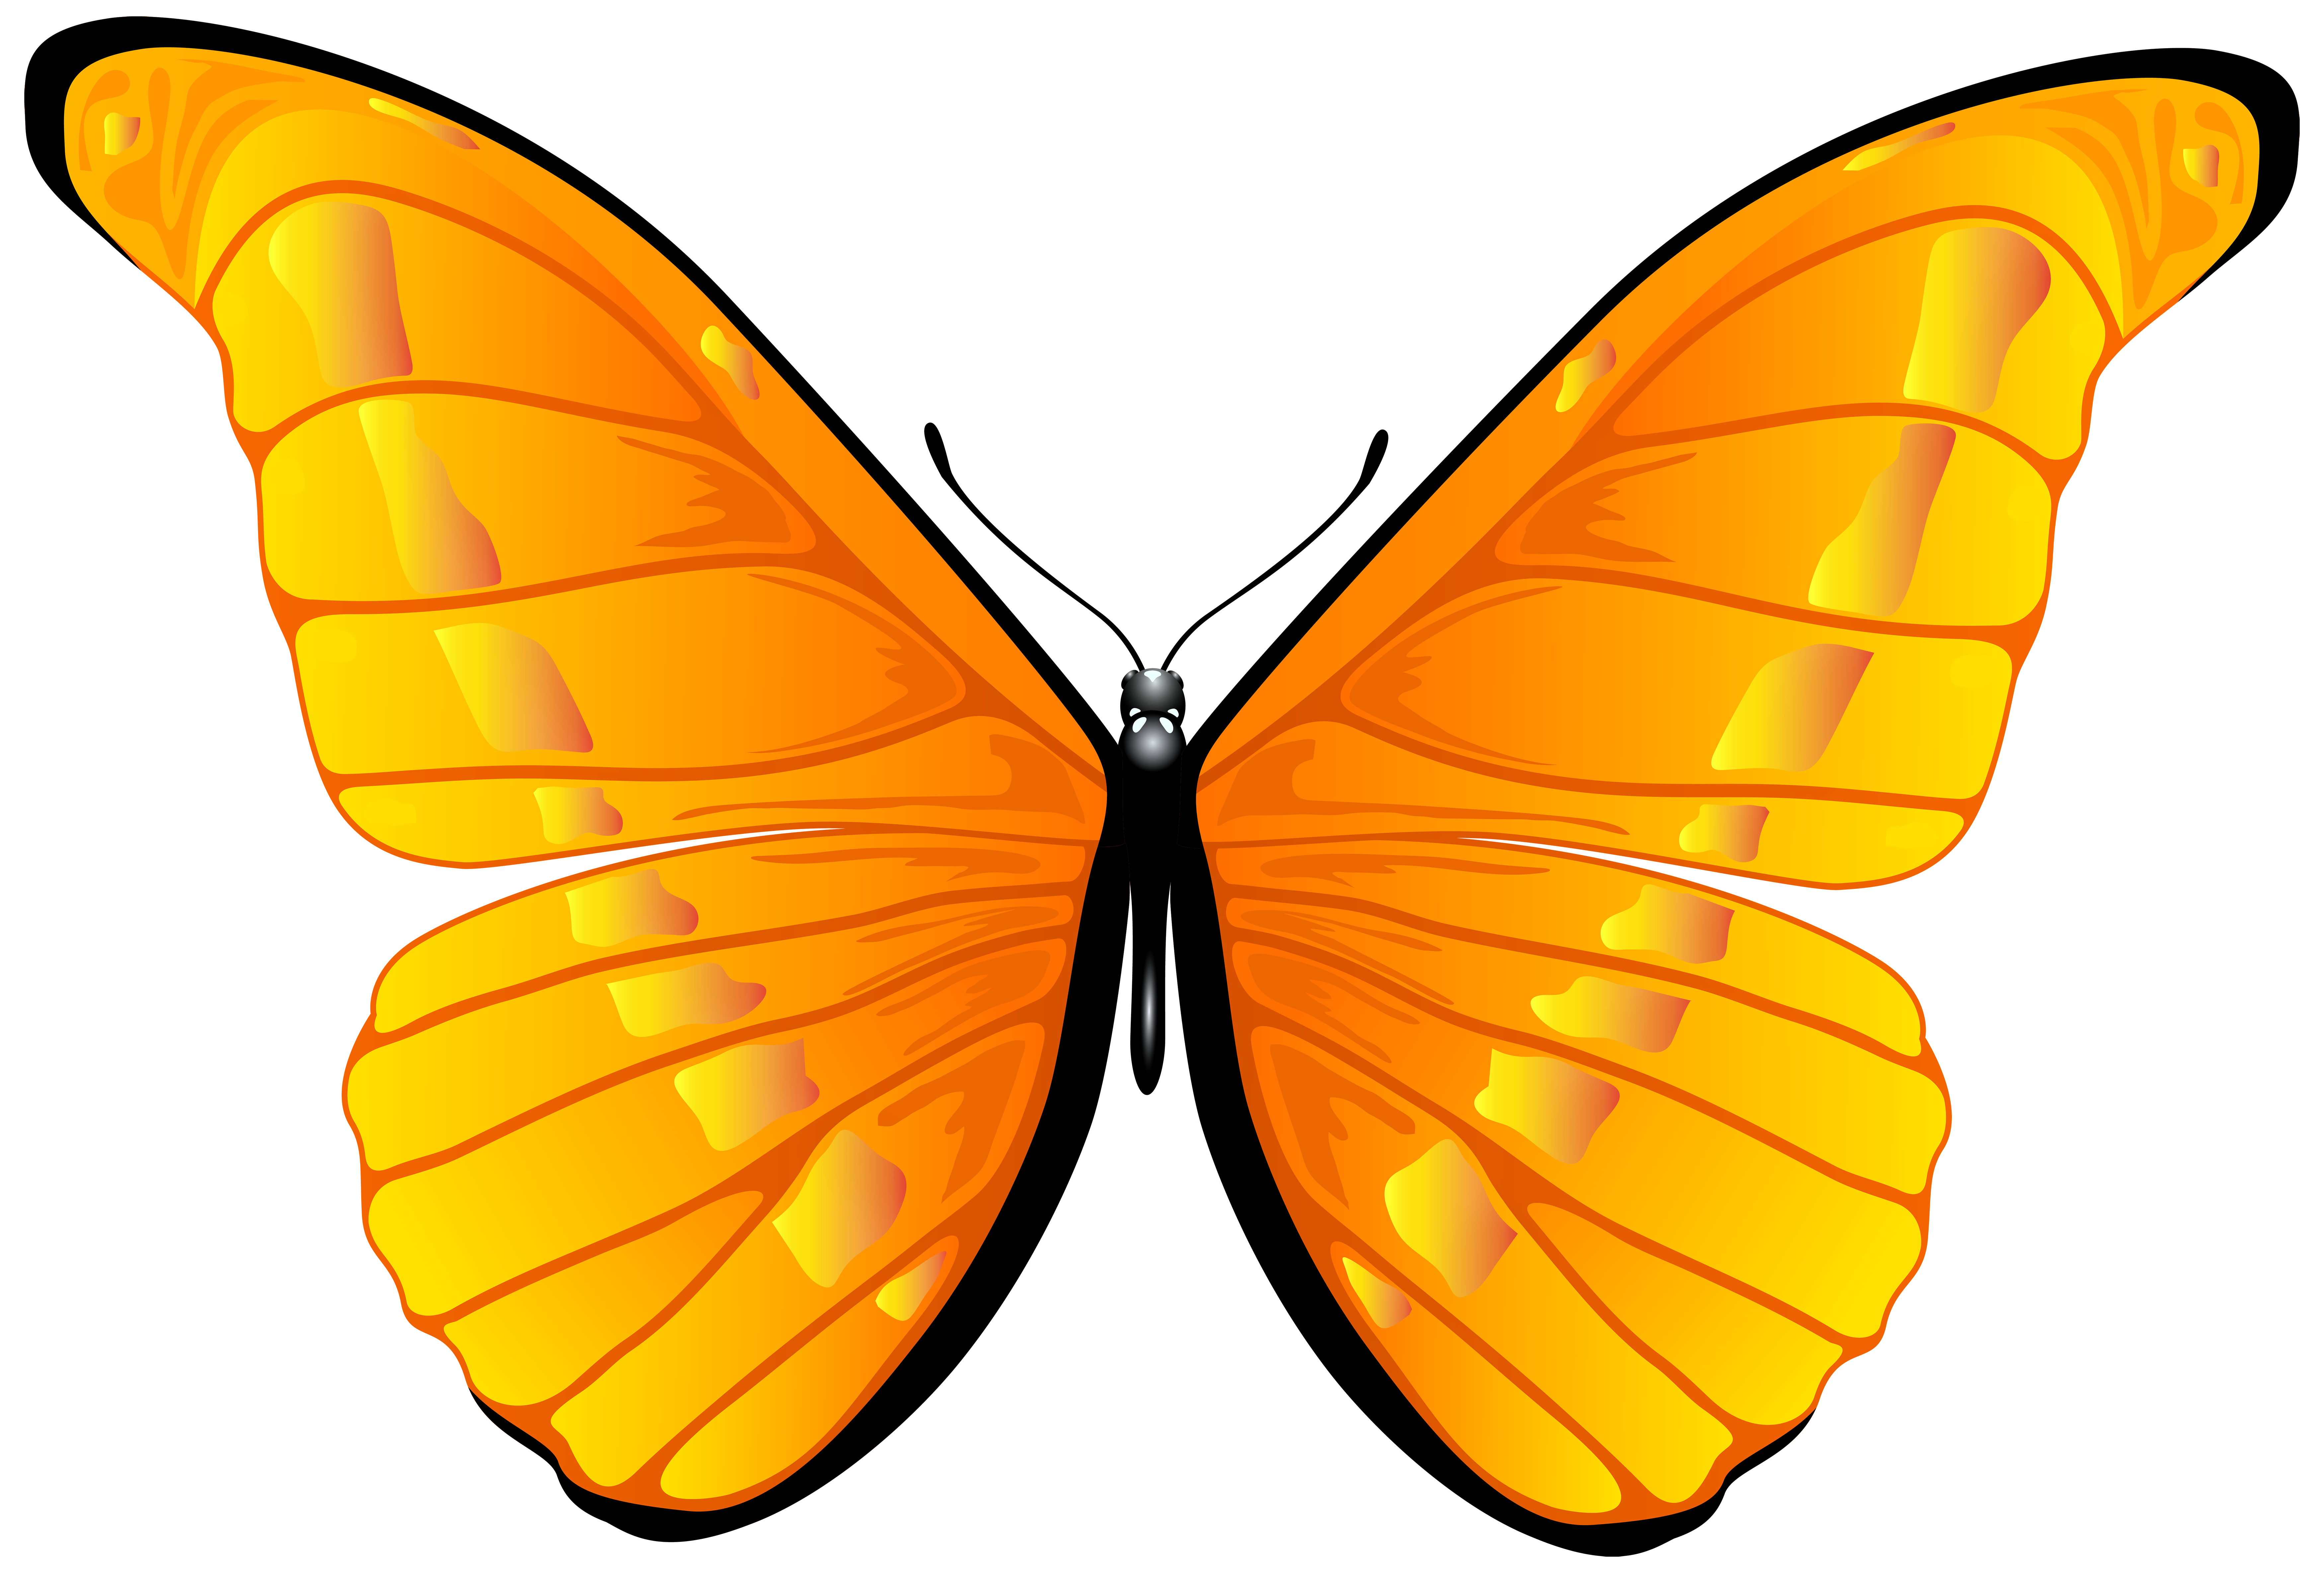 Free clipart of a butterfly graphic transparent download Orange Butterfly PNG Clip Art Image | Gallery Yopriceville - High ... graphic transparent download